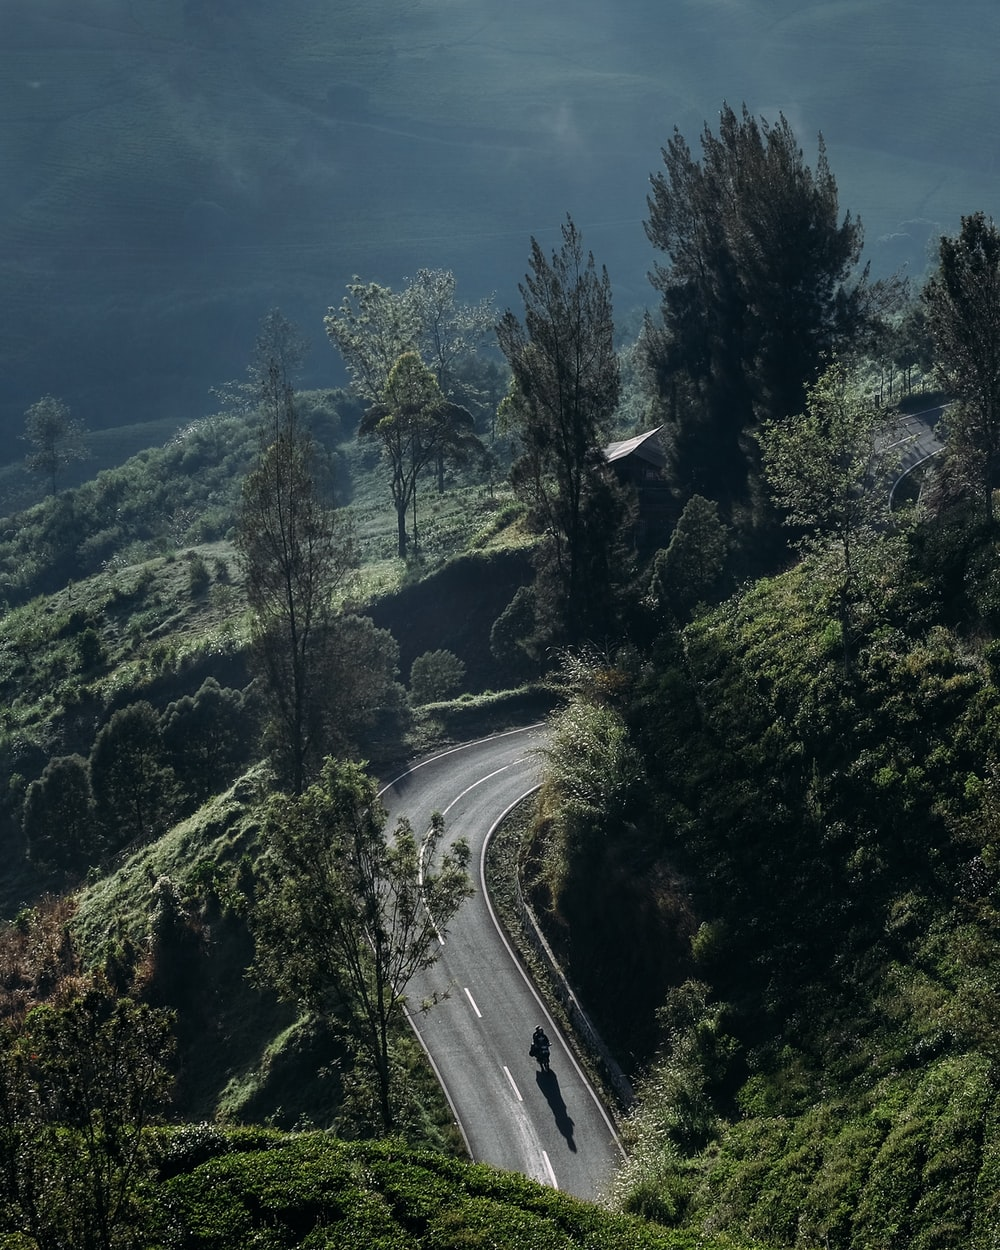 green trees and curved road